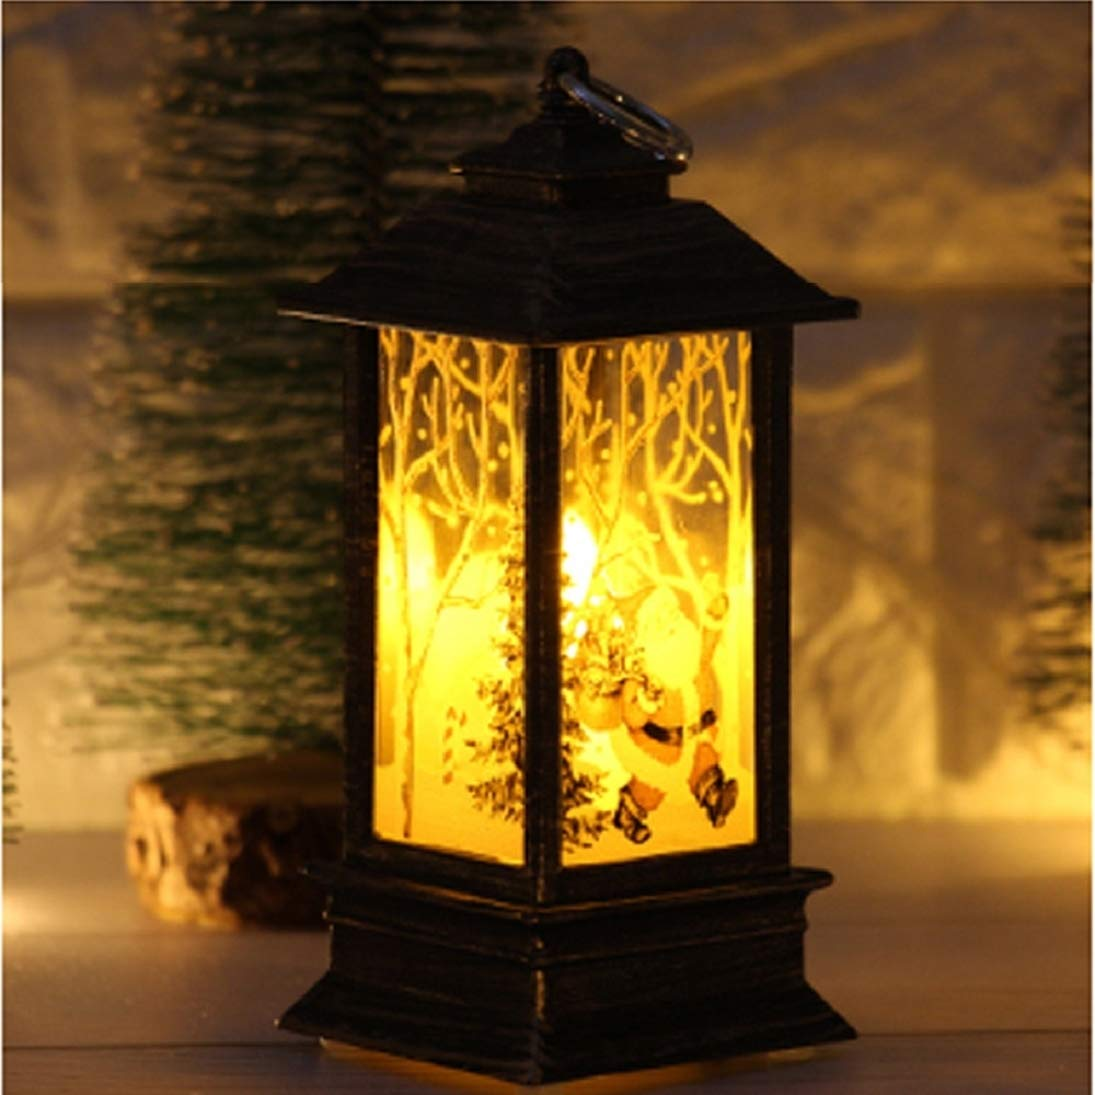 Gallity Nightlight Decoration Christmas Candles, LED Tea Light Christmas Candles Christmas Decoration (D)